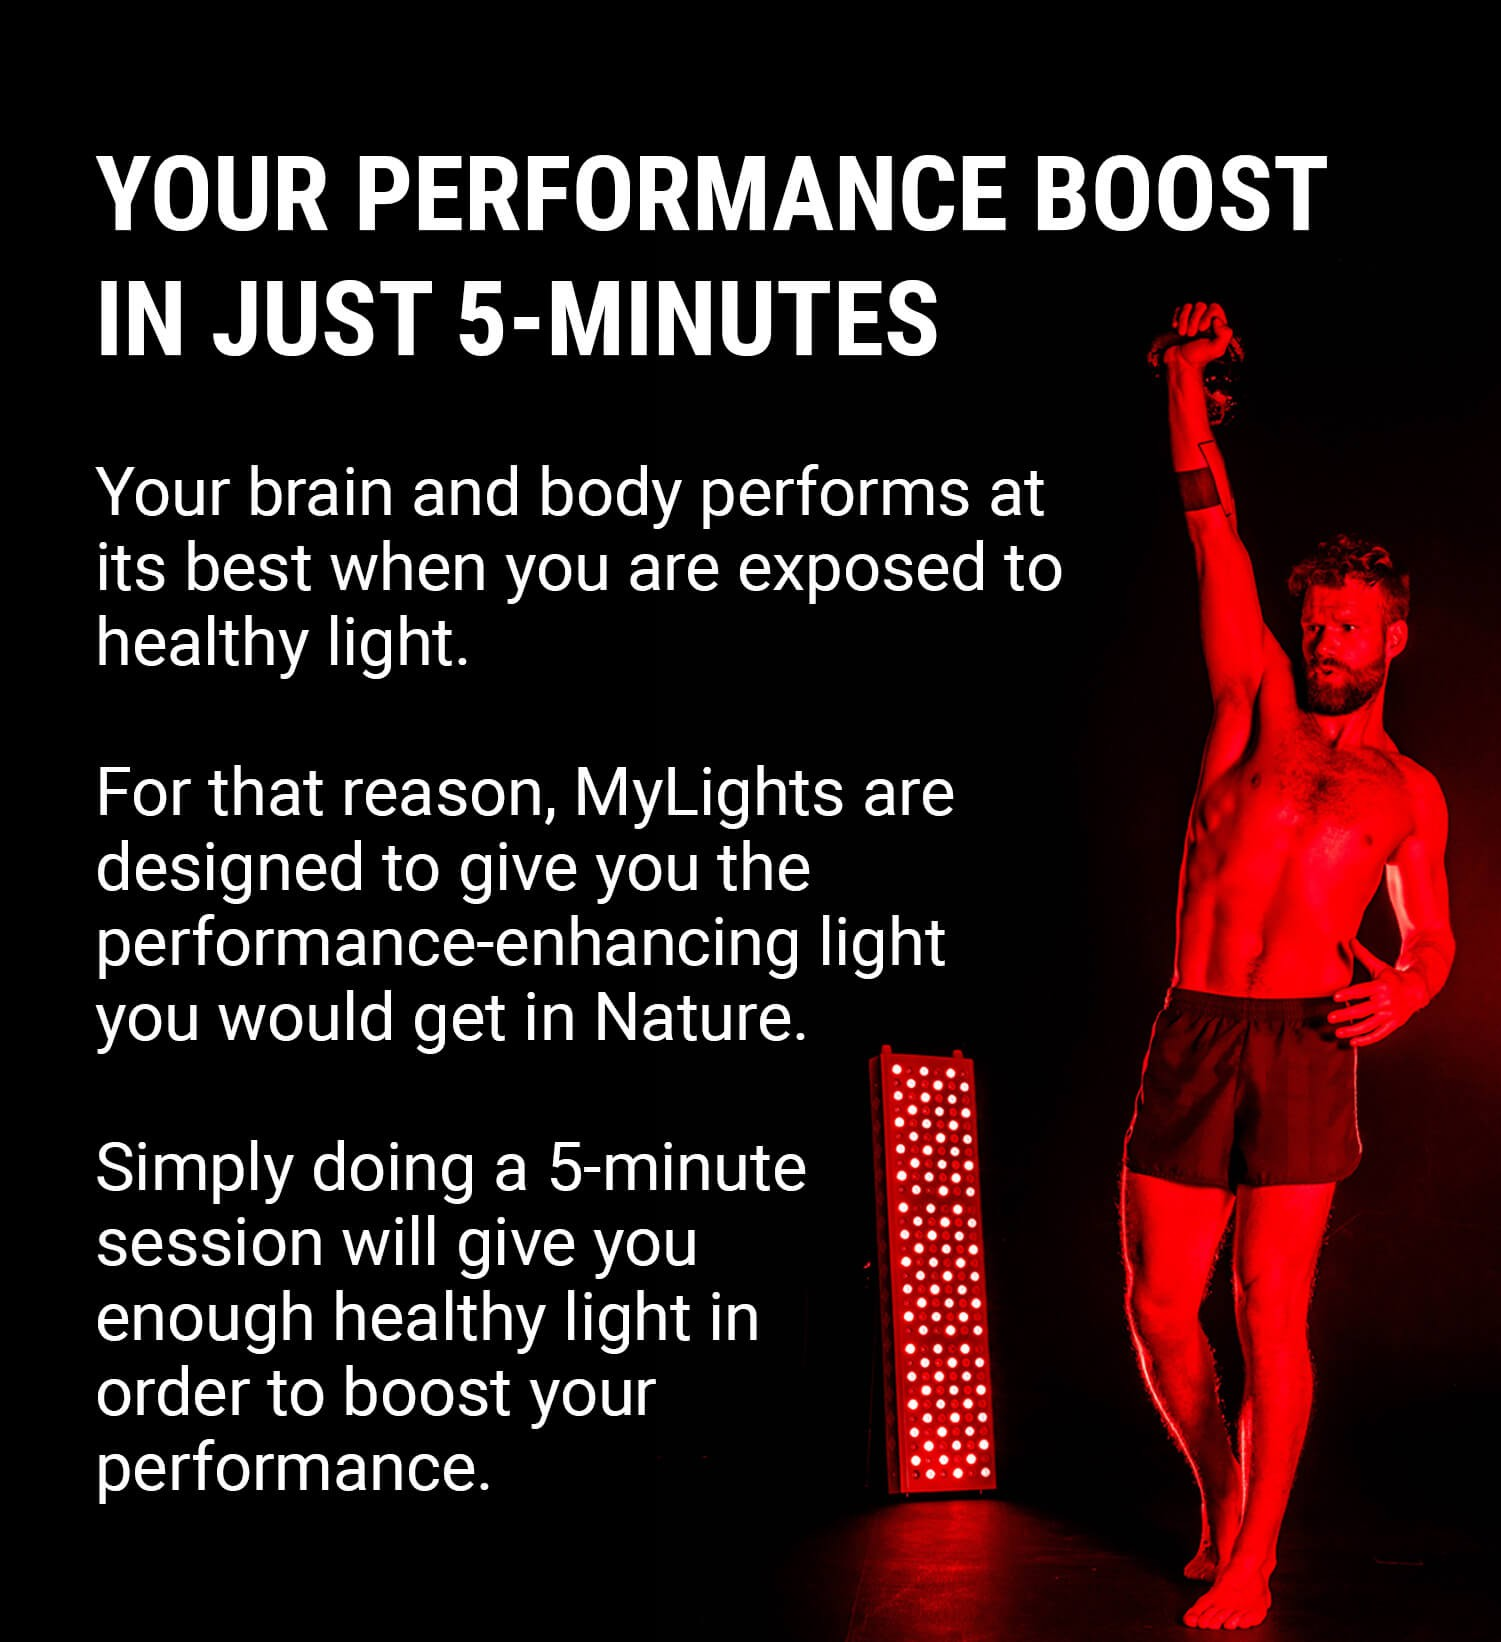 Performance boost red light therapy